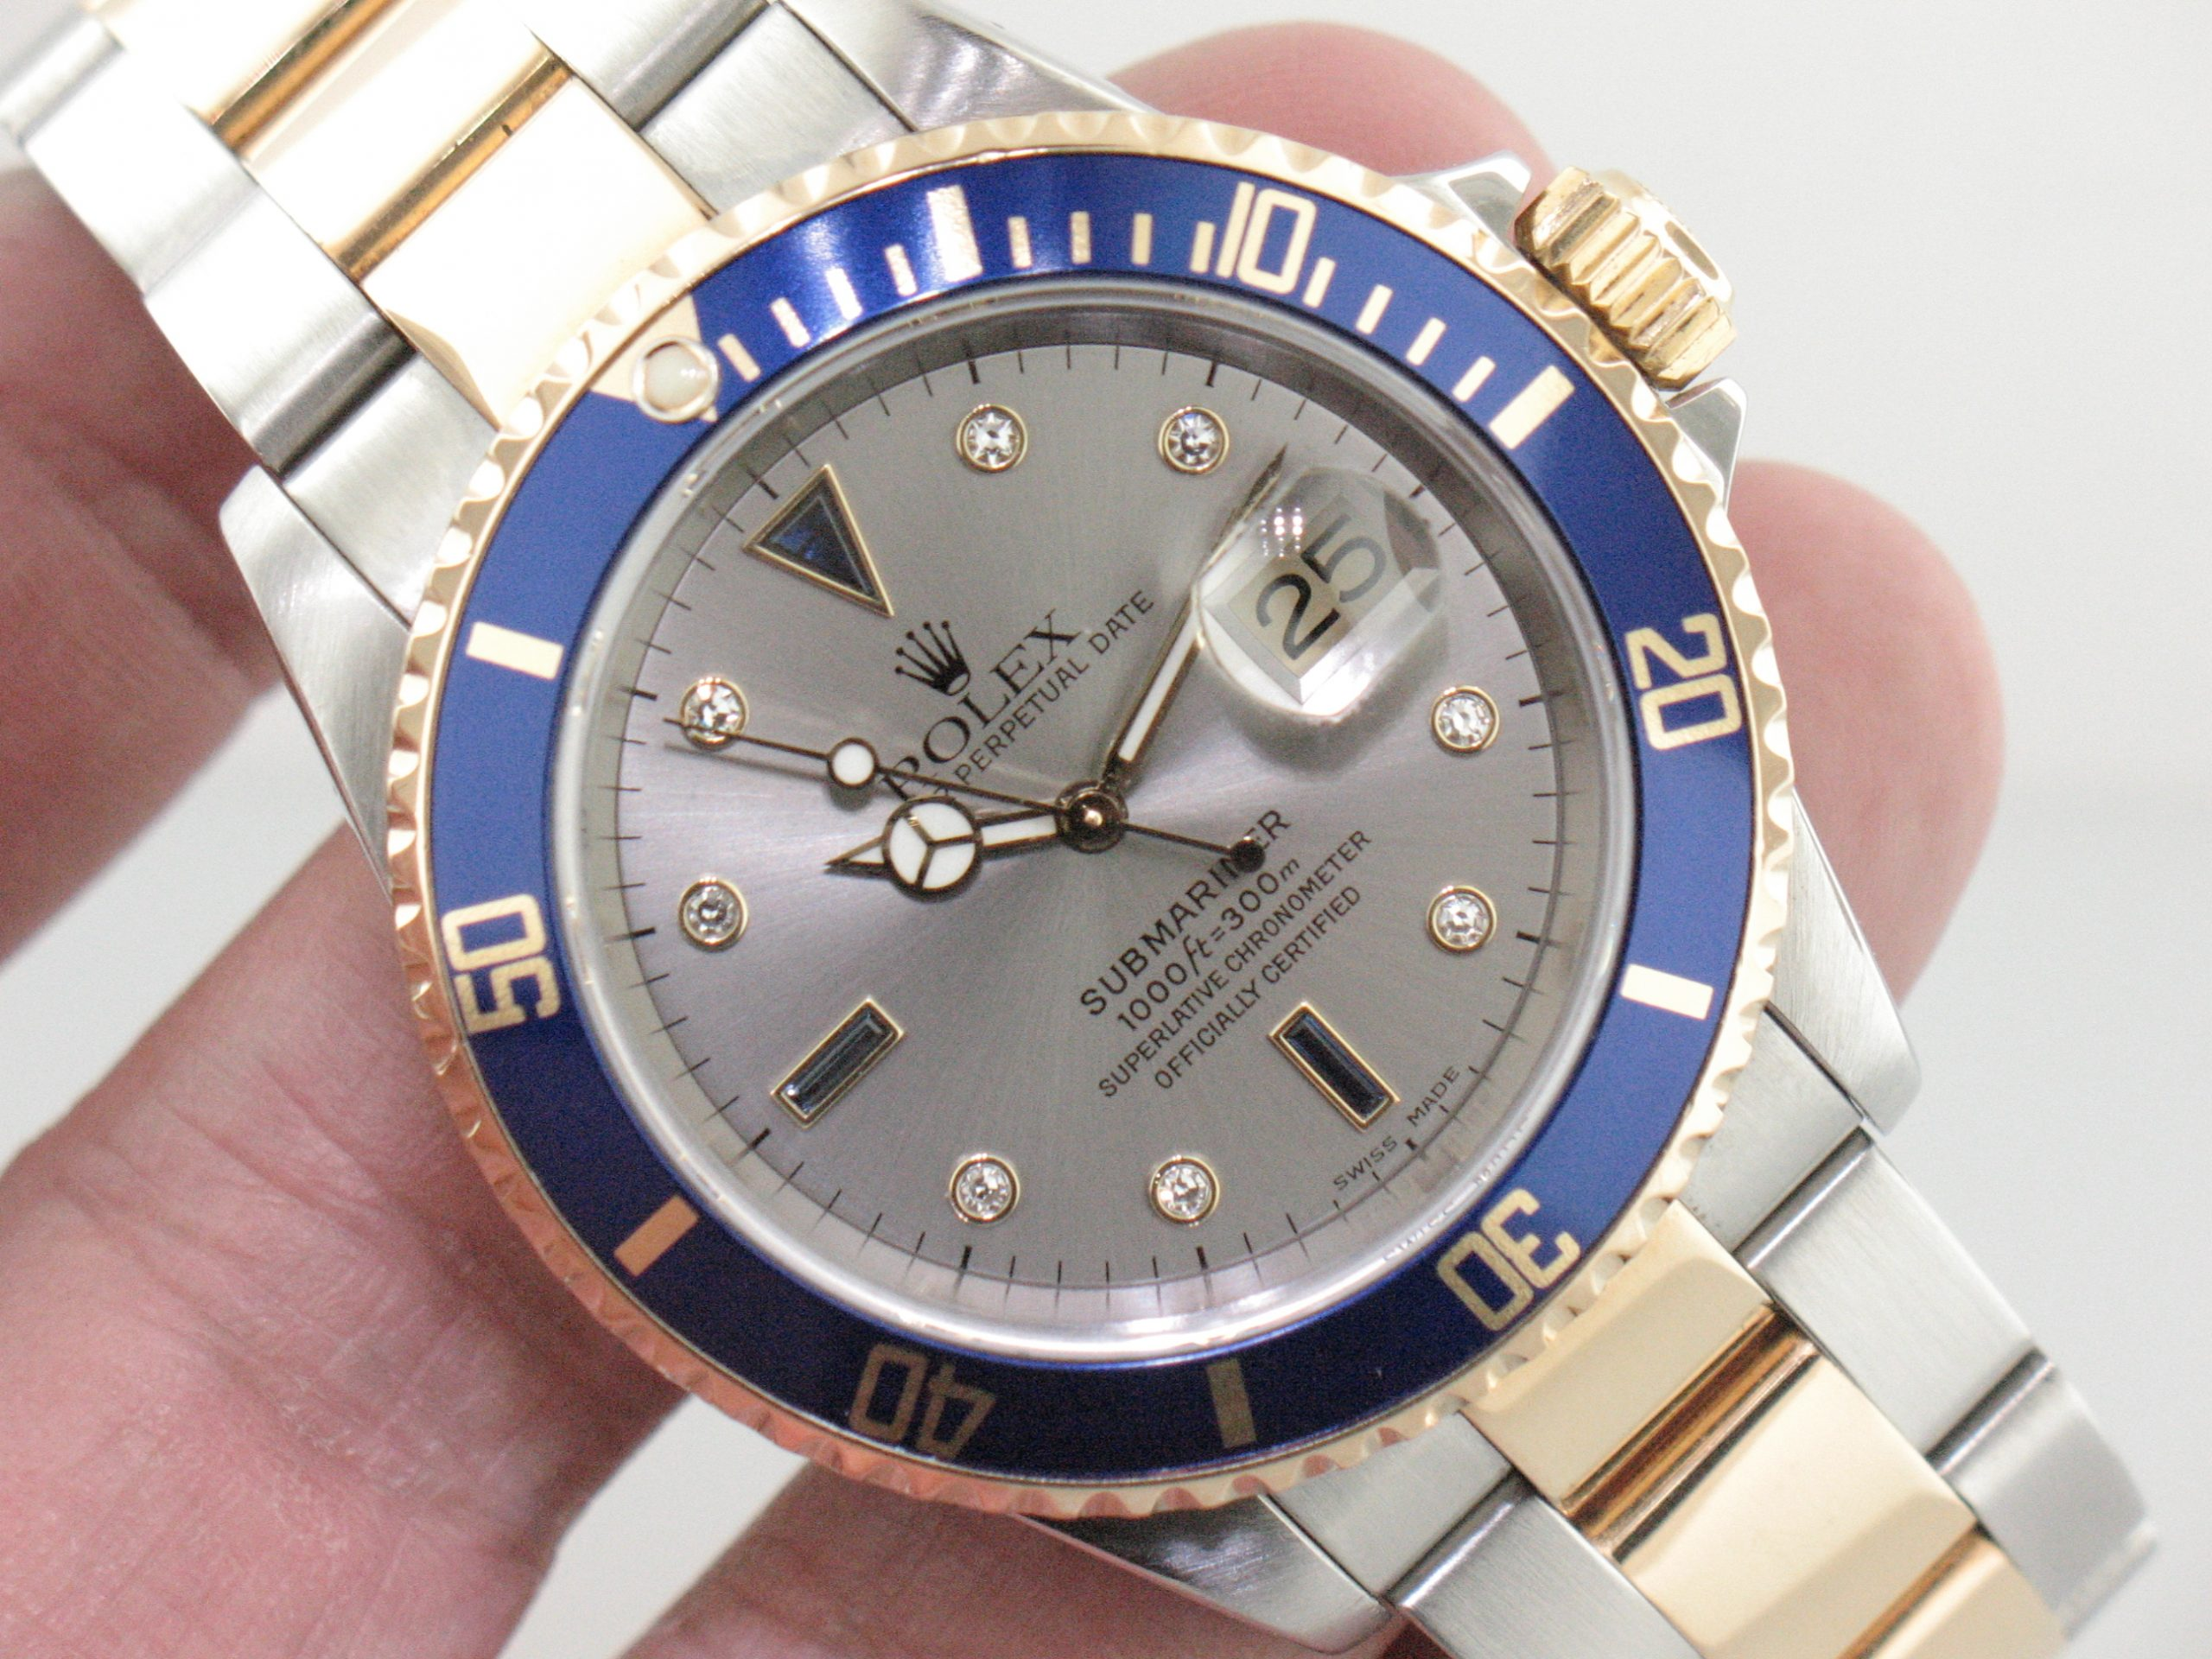 Rolex 2-Tone Submariner Ref. 16613 Diamond Dial Men's Watch Yr. 2000